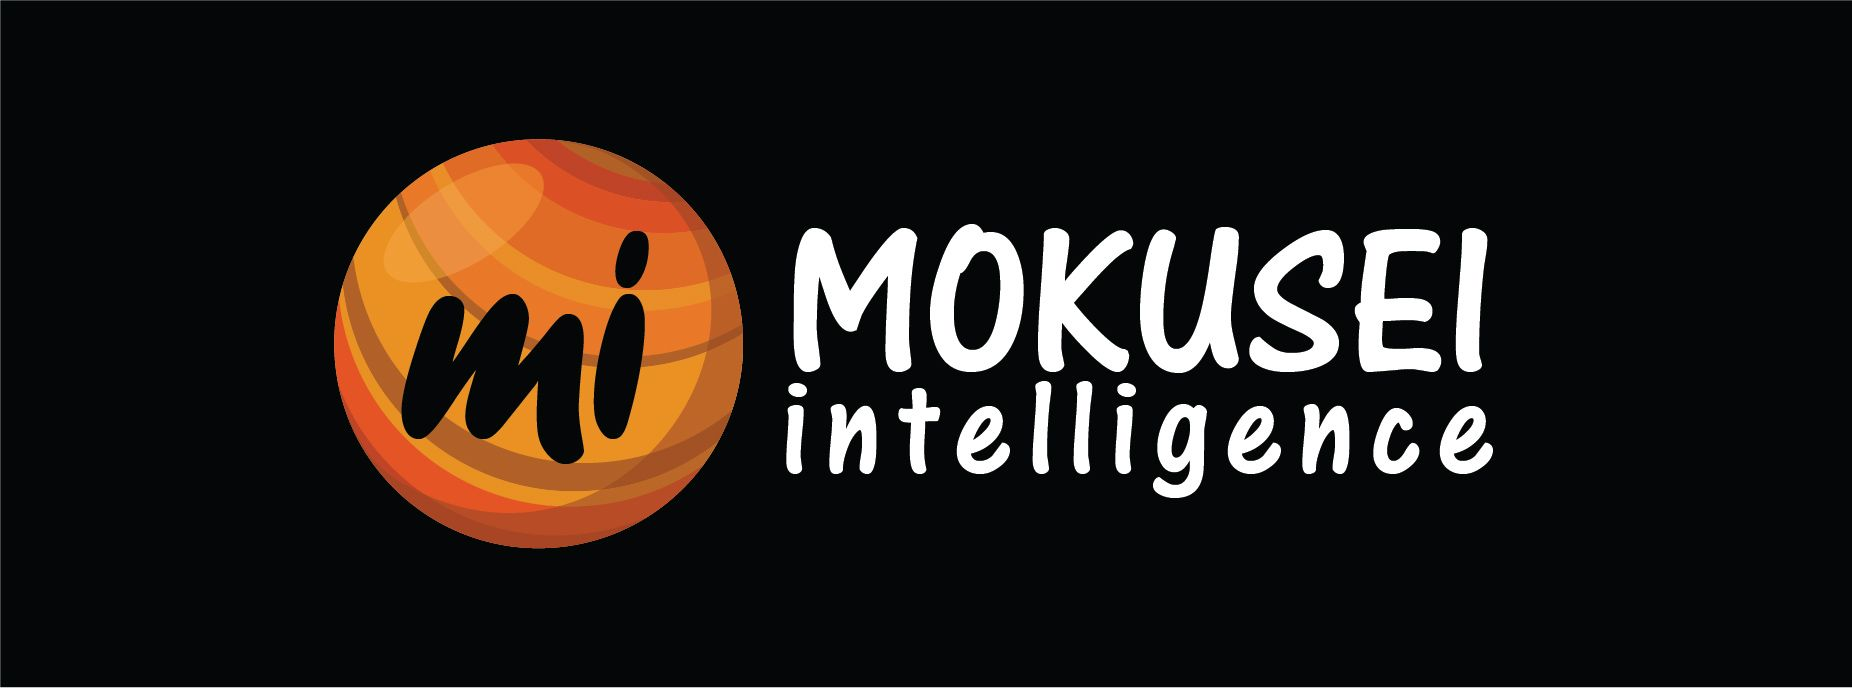 Mokusei Intelligence